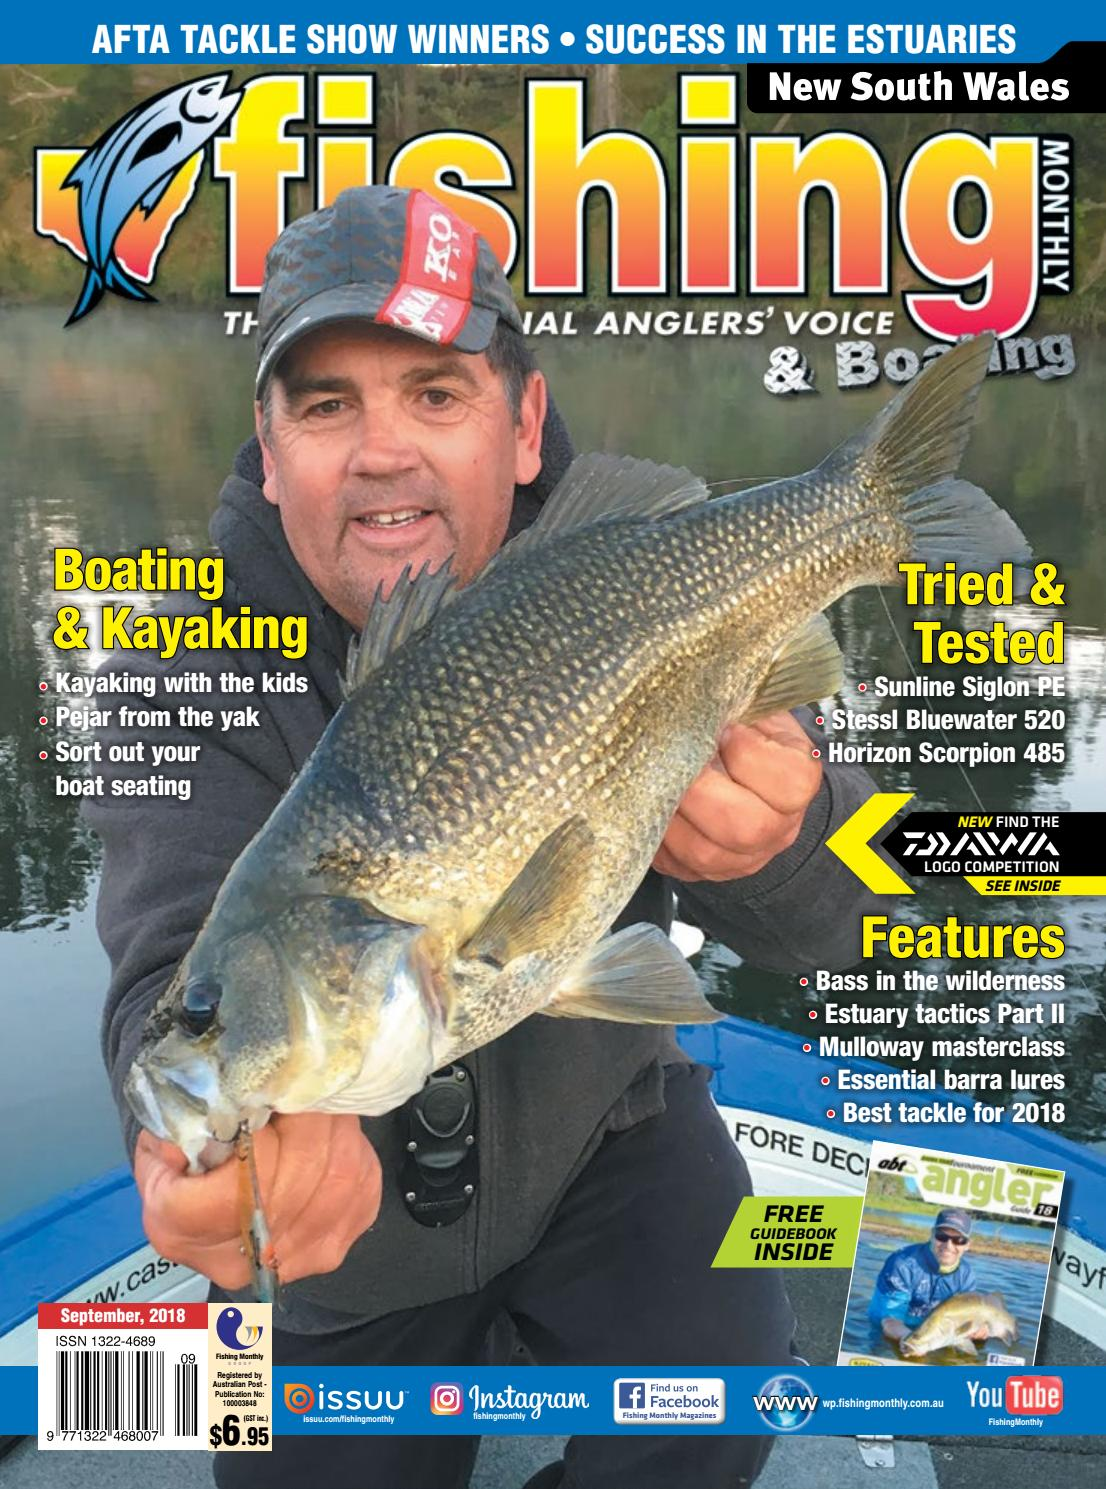 Successful fishing: feeder equipment on the bream and properly selected bait